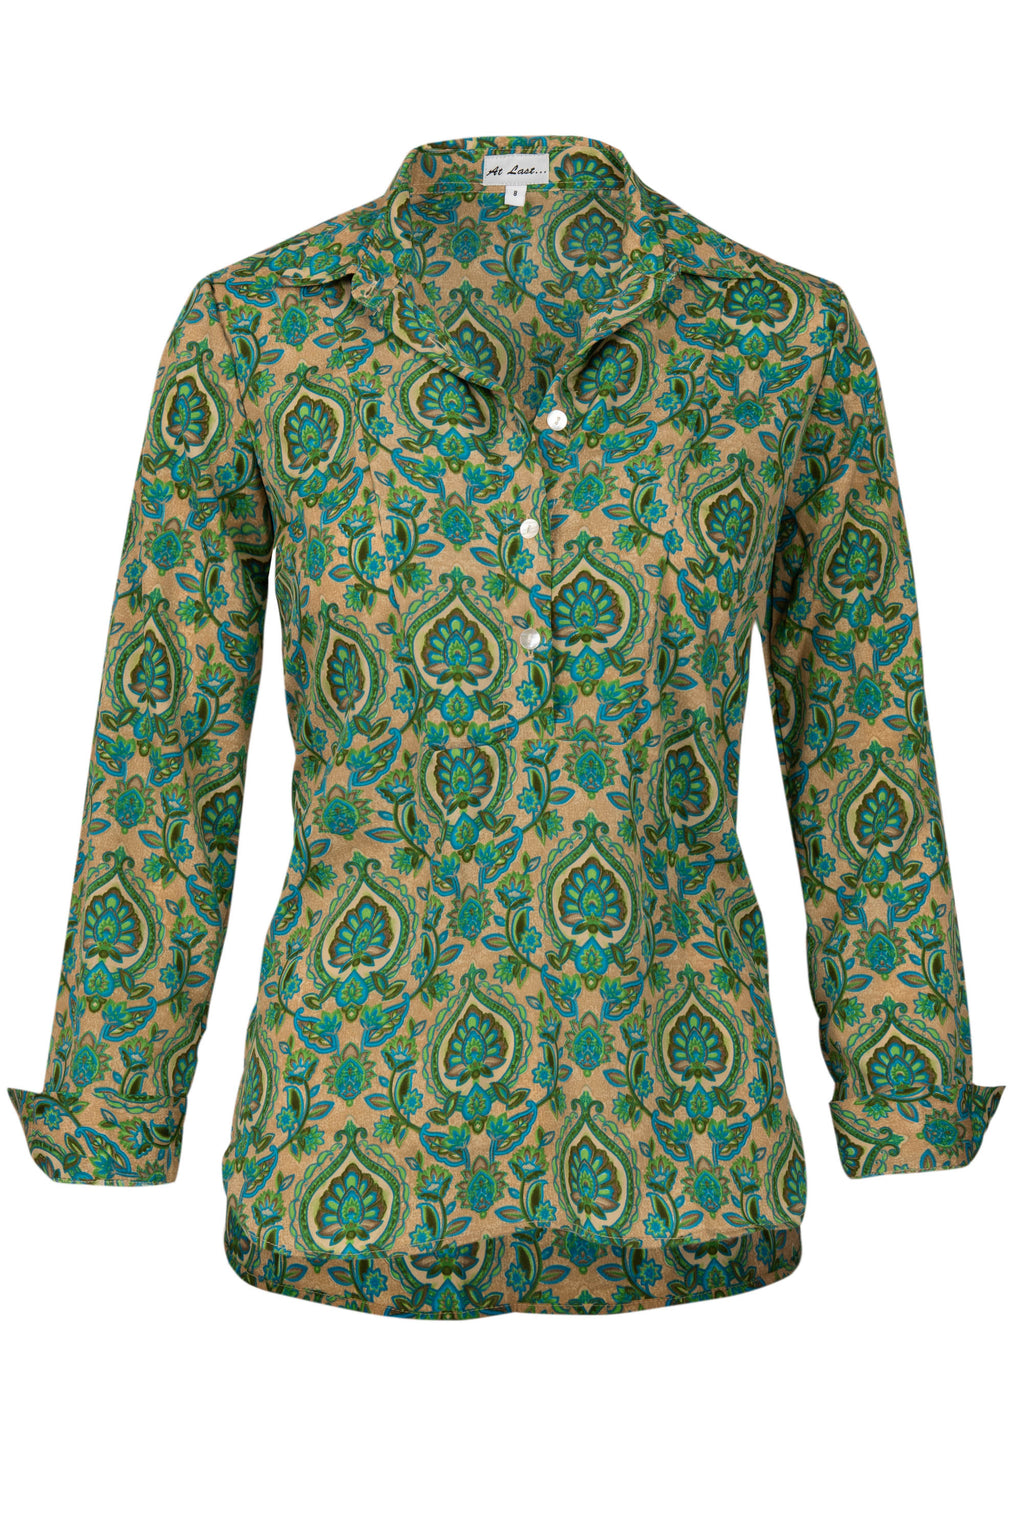 Soho Shirt with Back Detail - Green